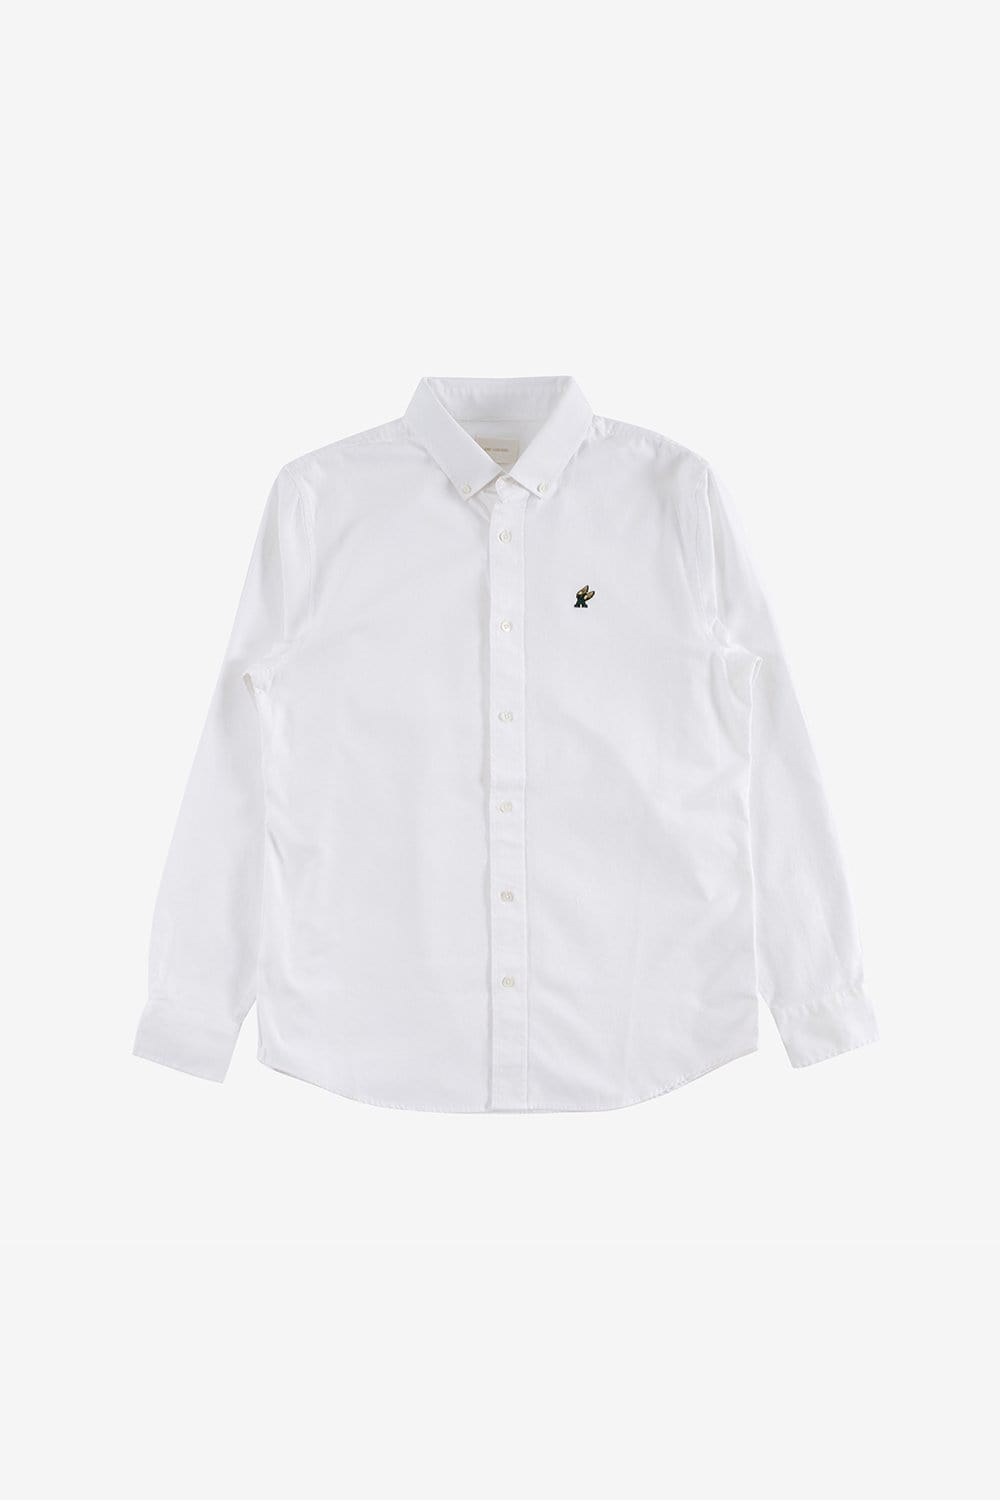 Aimé Leon Dore Apparel A-Wing Oxford Shirt